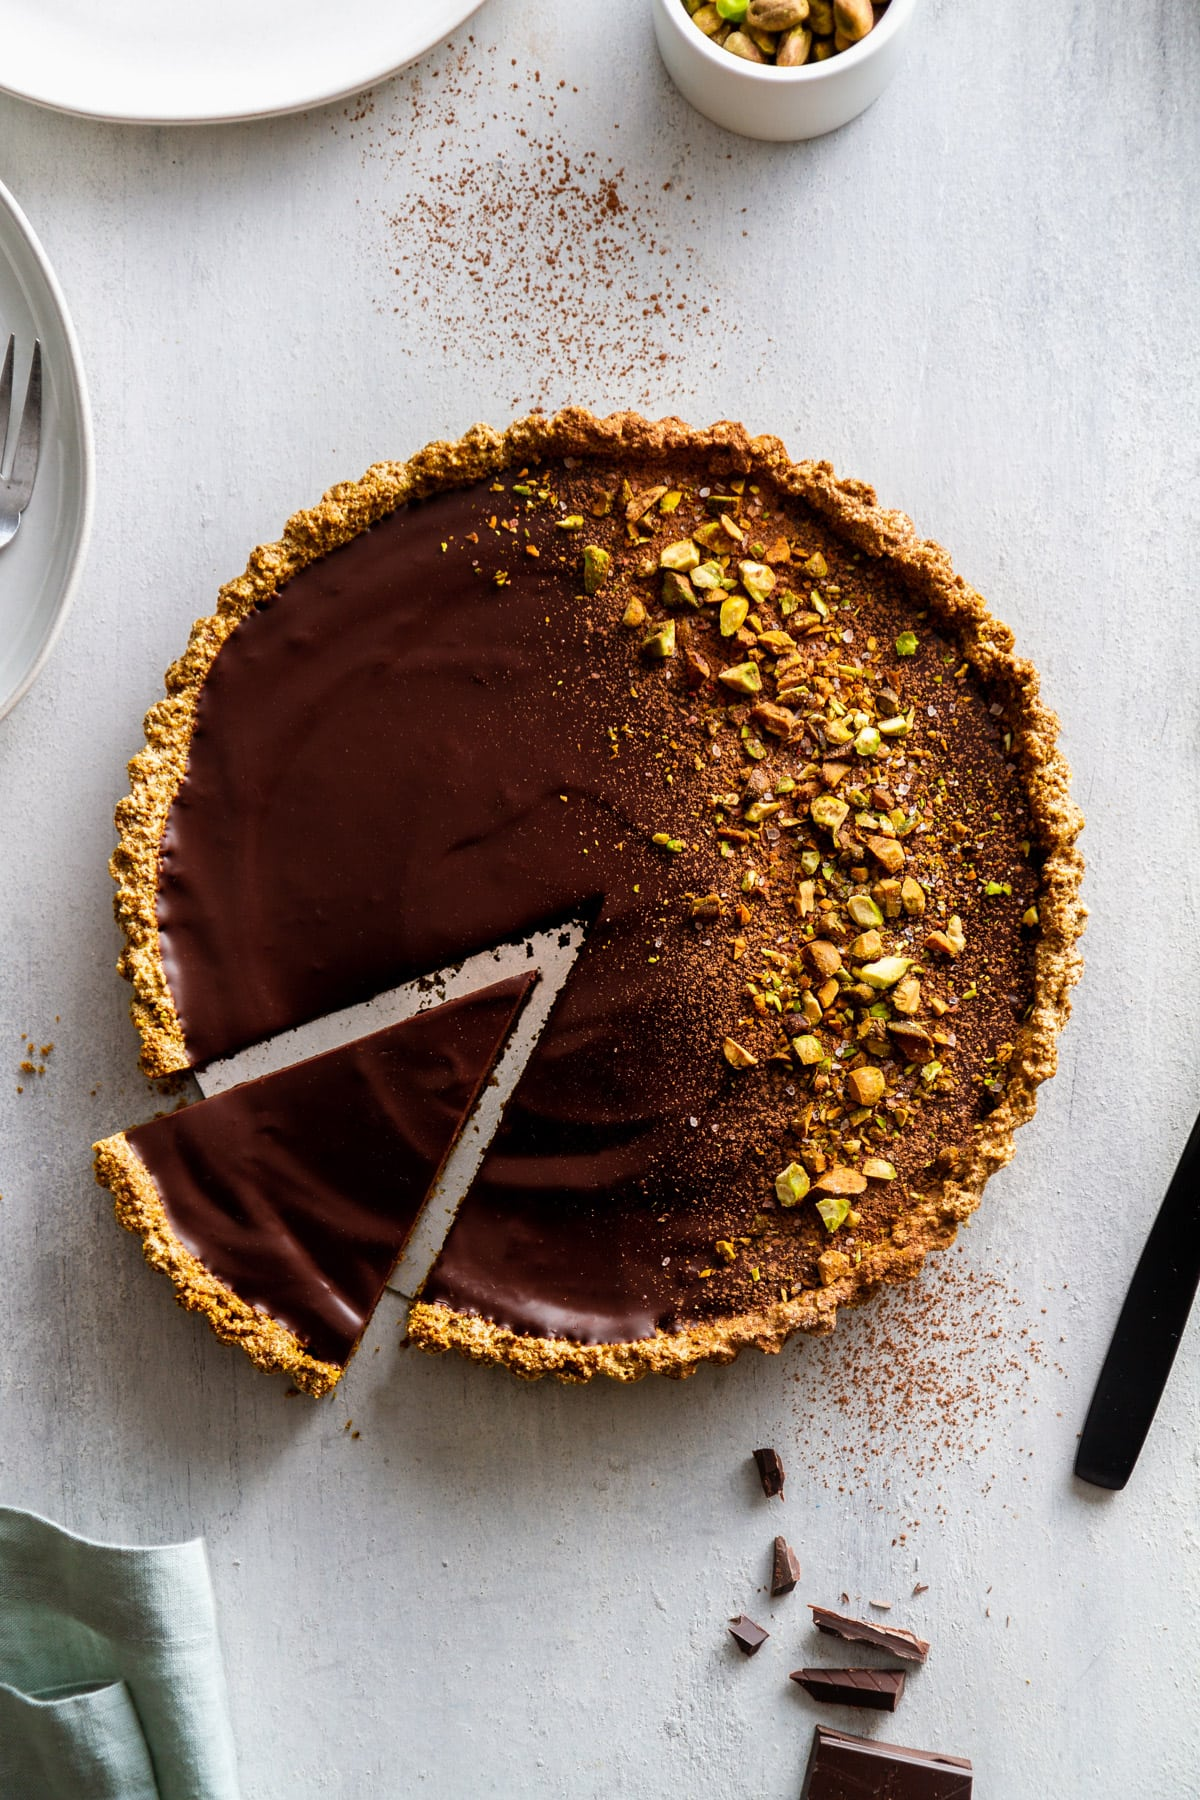 a dark chocolate pistachio tart with a slice out of it on a surface